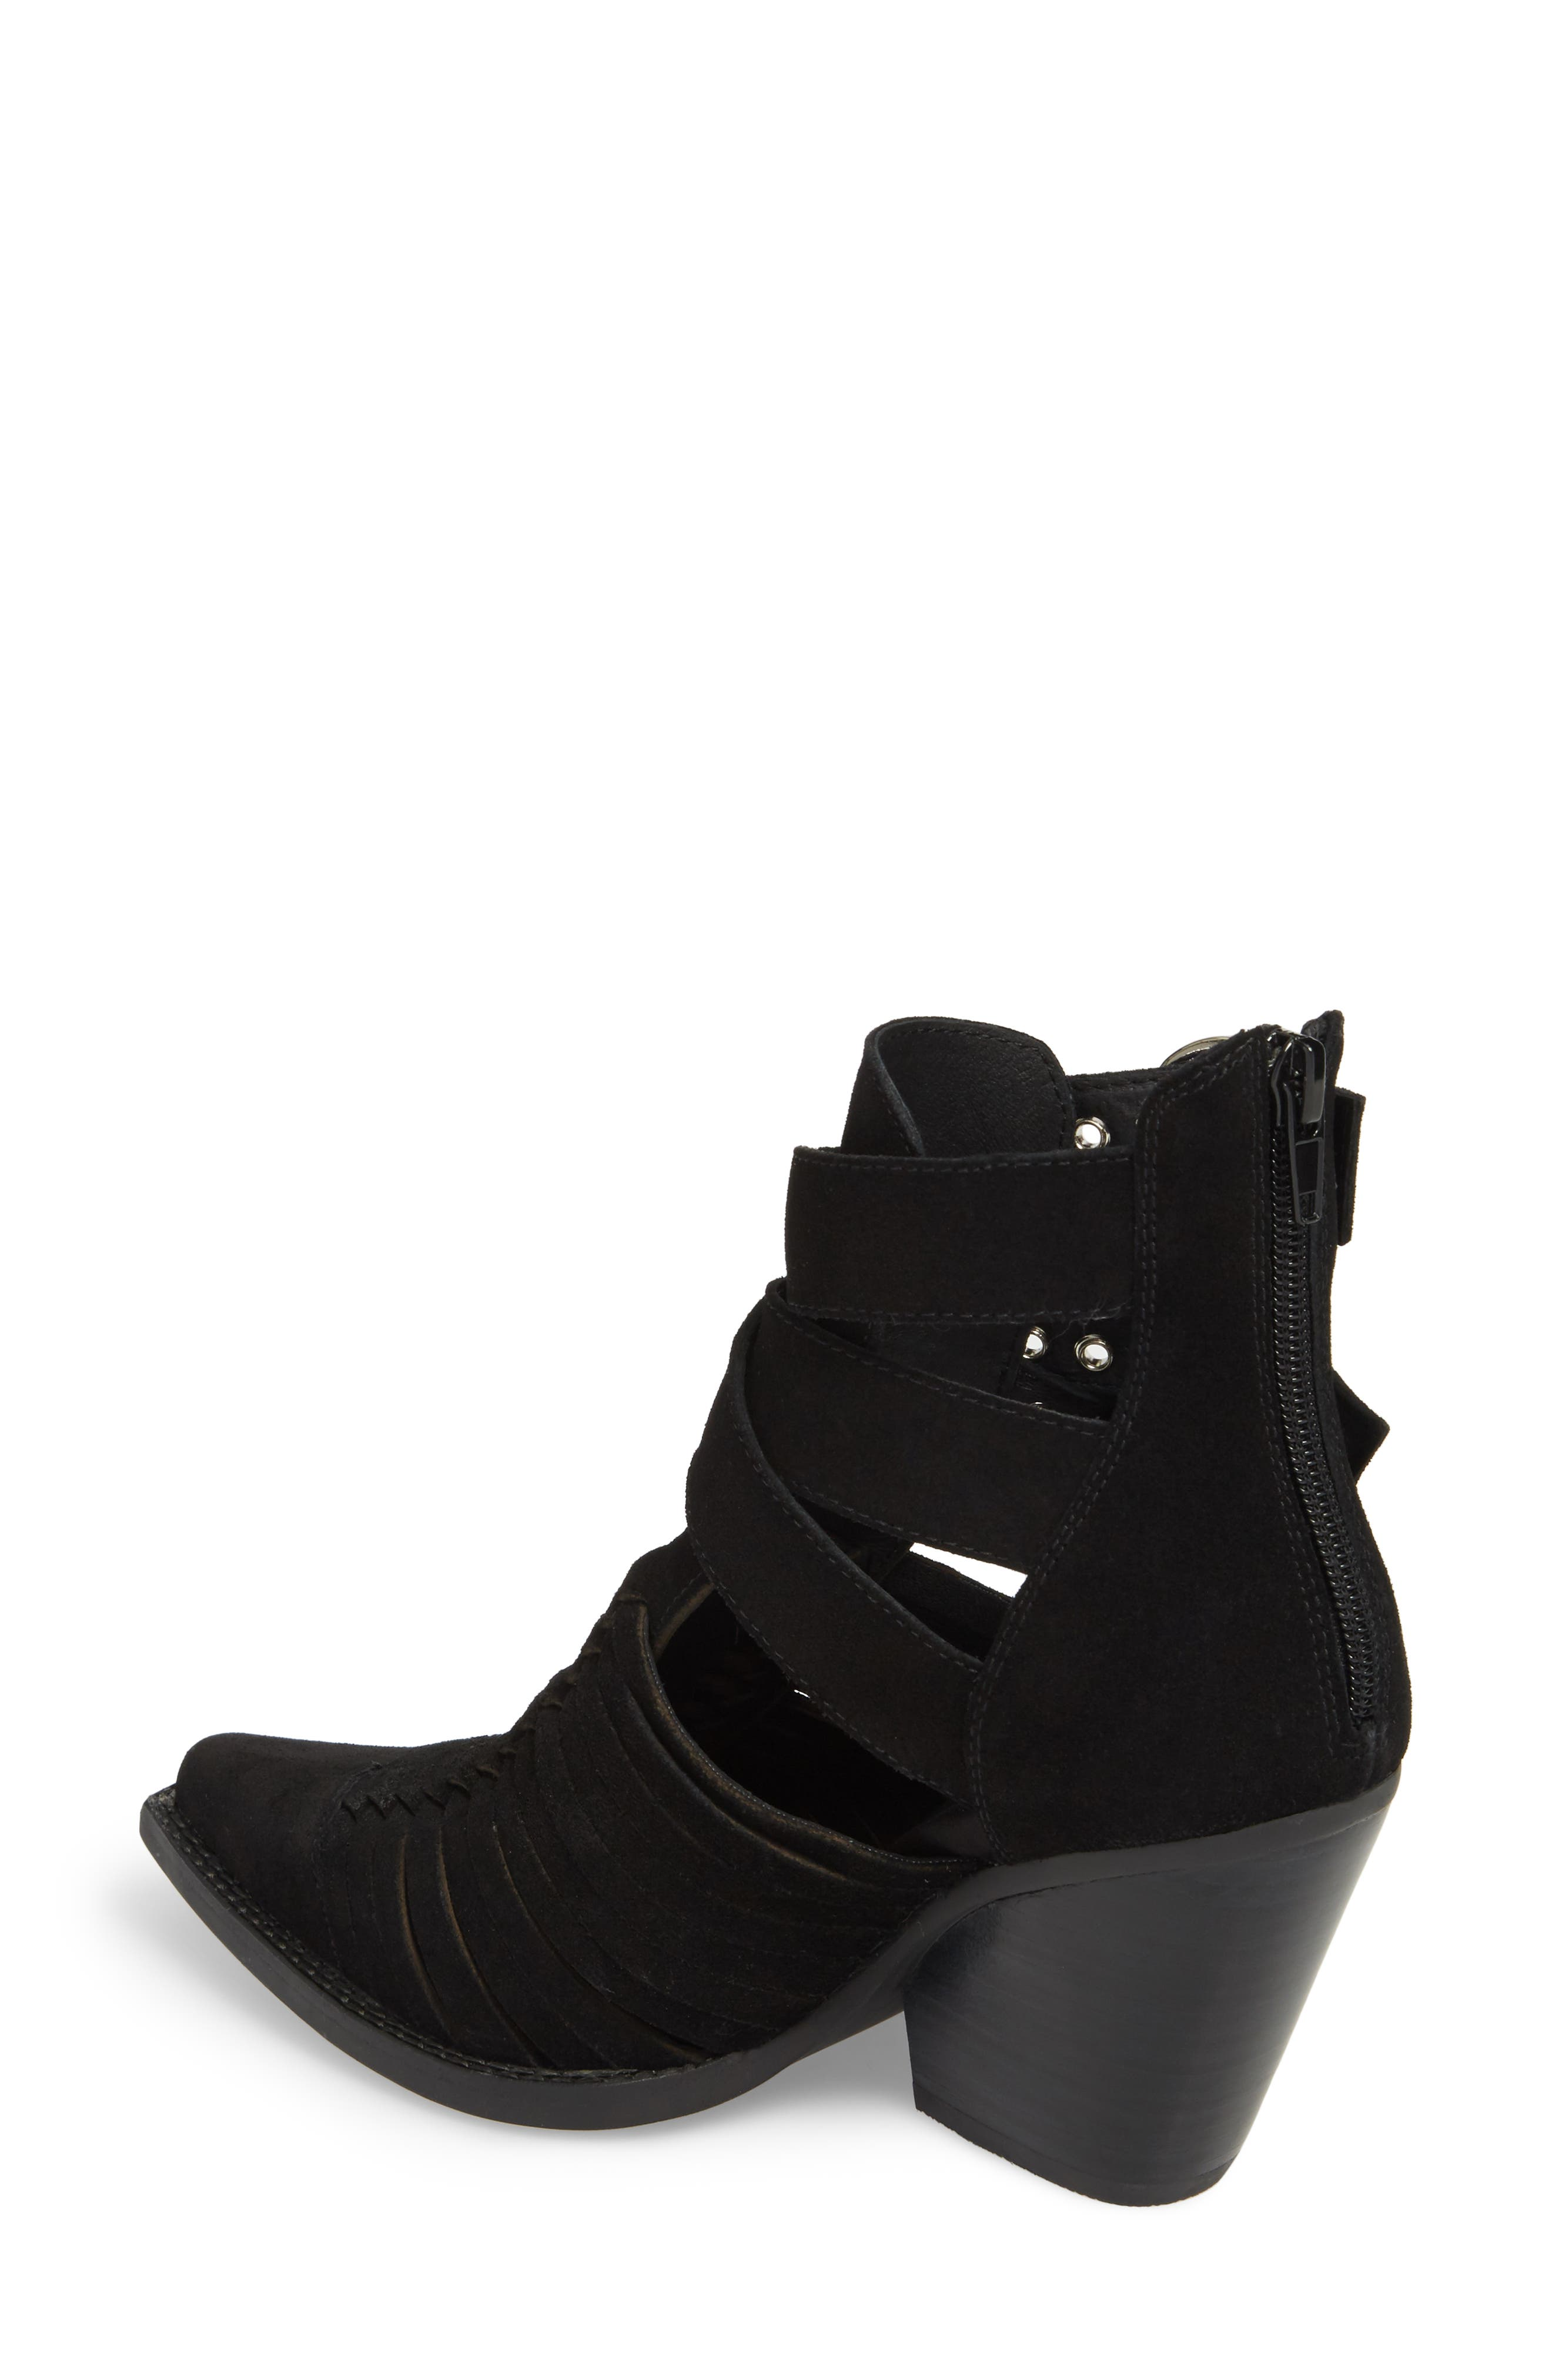 JEFFREY CAMPBELL,                             Jamison Bootie,                             Alternate thumbnail 2, color,                             005